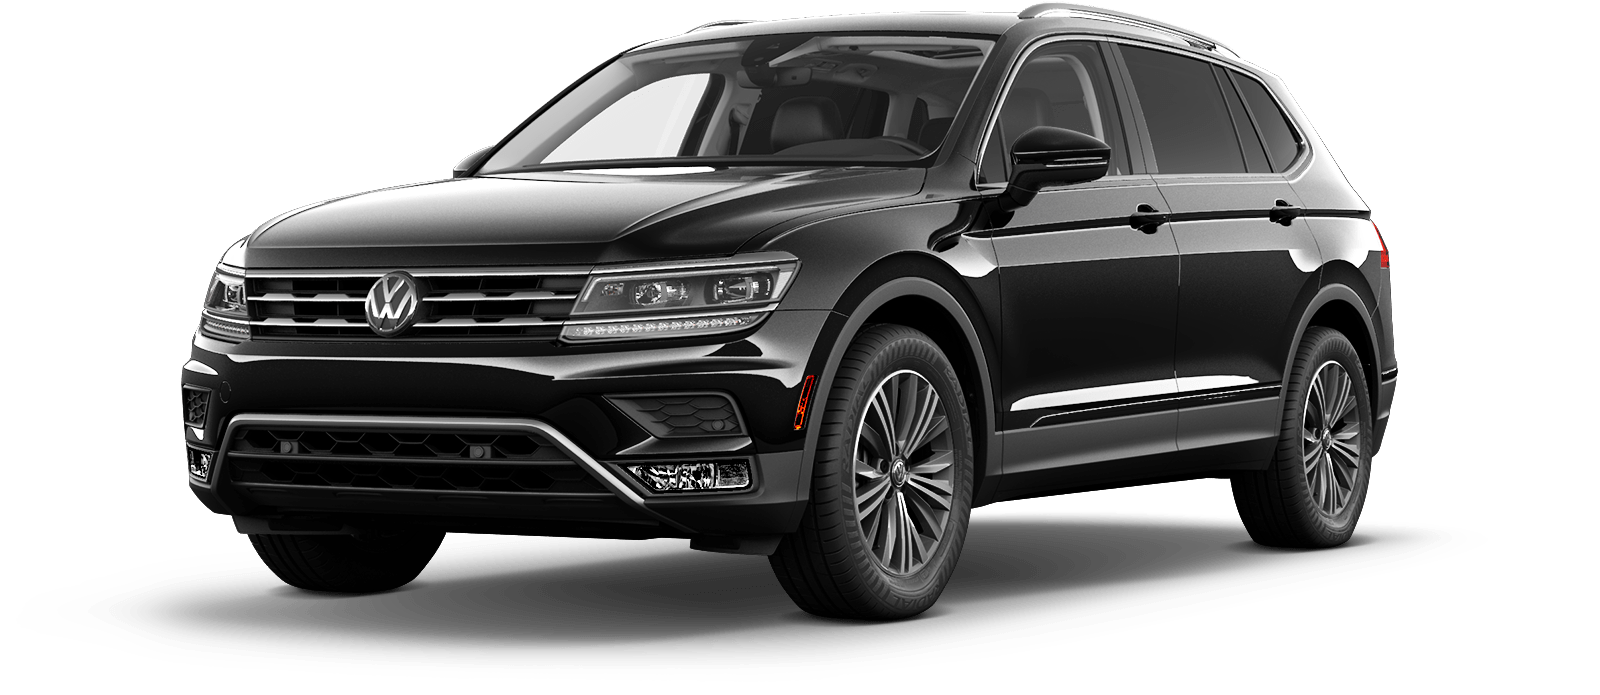 2018 Volkswagen Tiguan Suv Color Options